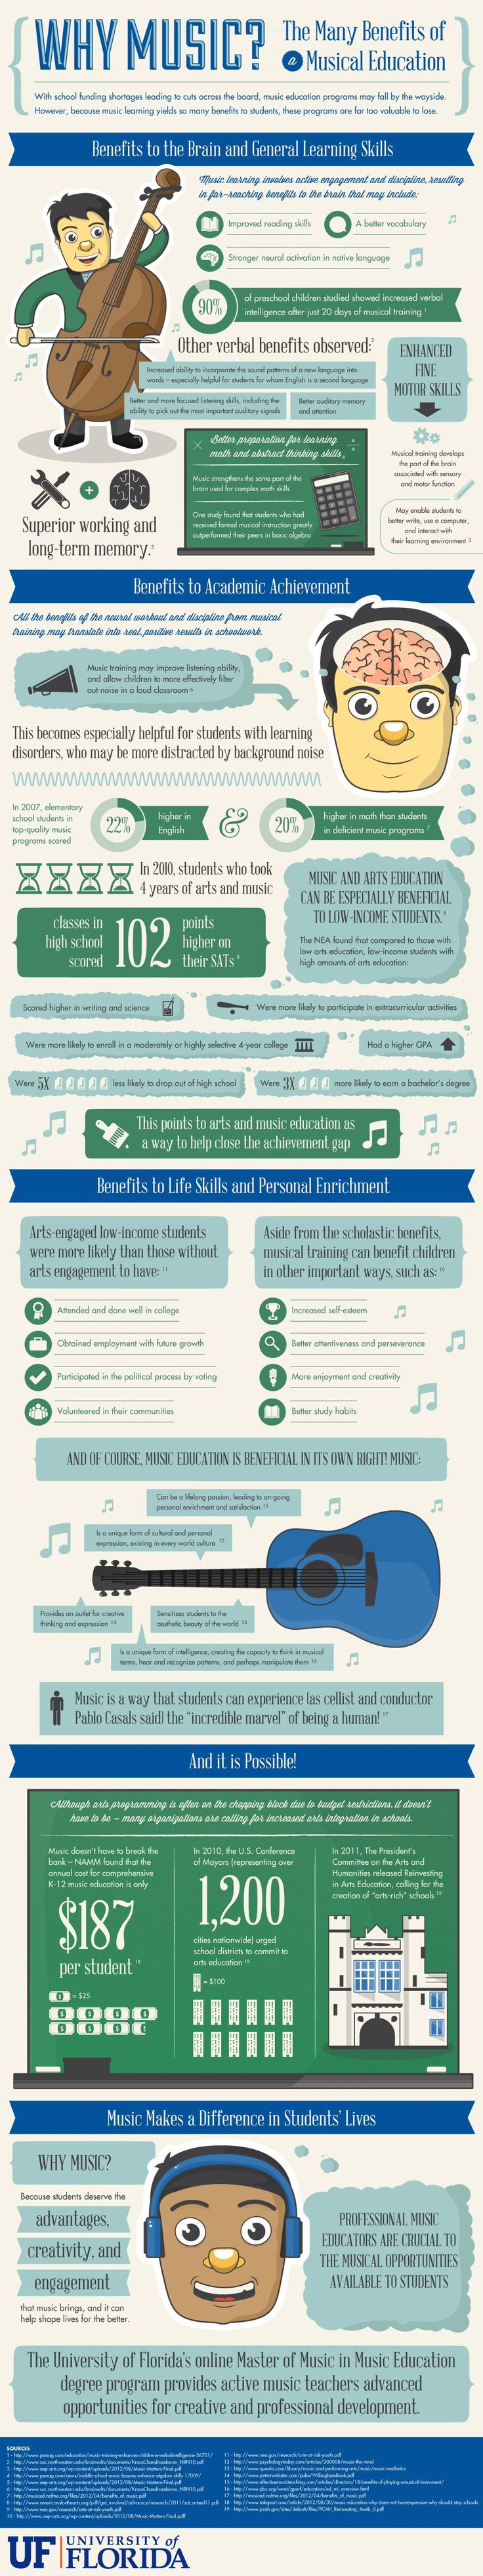 Why Musc the Many Benefits Of Musical Education